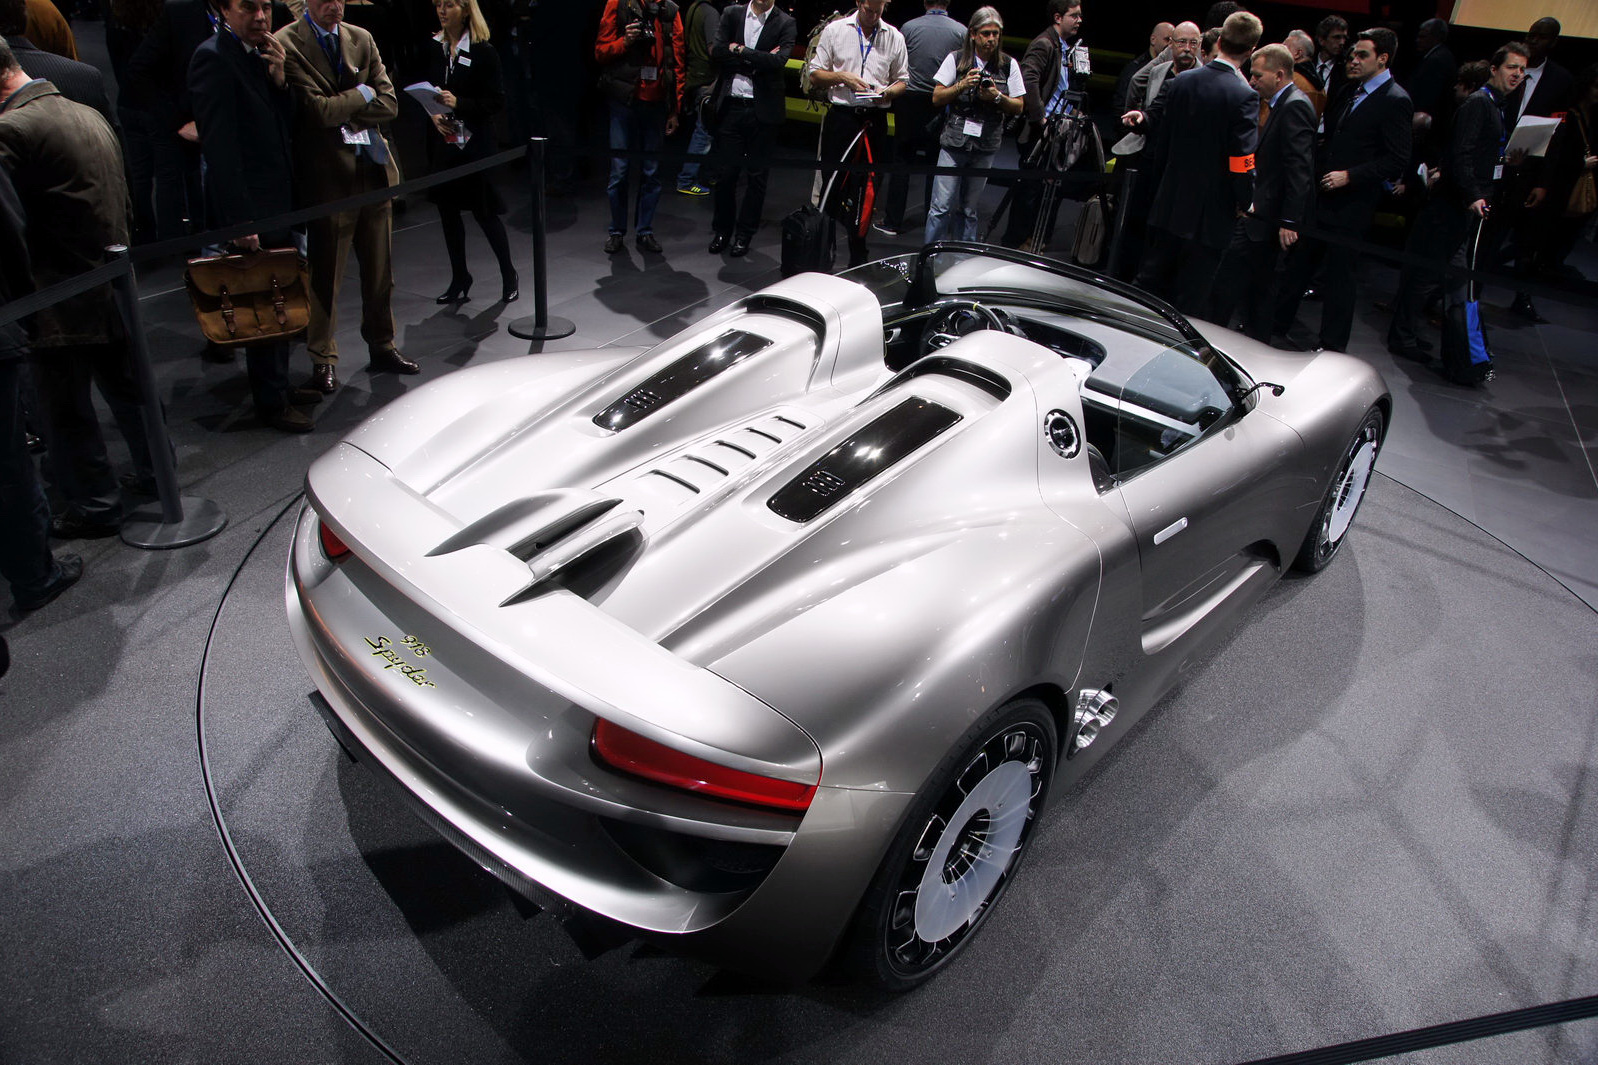 report claims porsche may price 918 spyder at 630 000 or 1 5 times. Black Bedroom Furniture Sets. Home Design Ideas